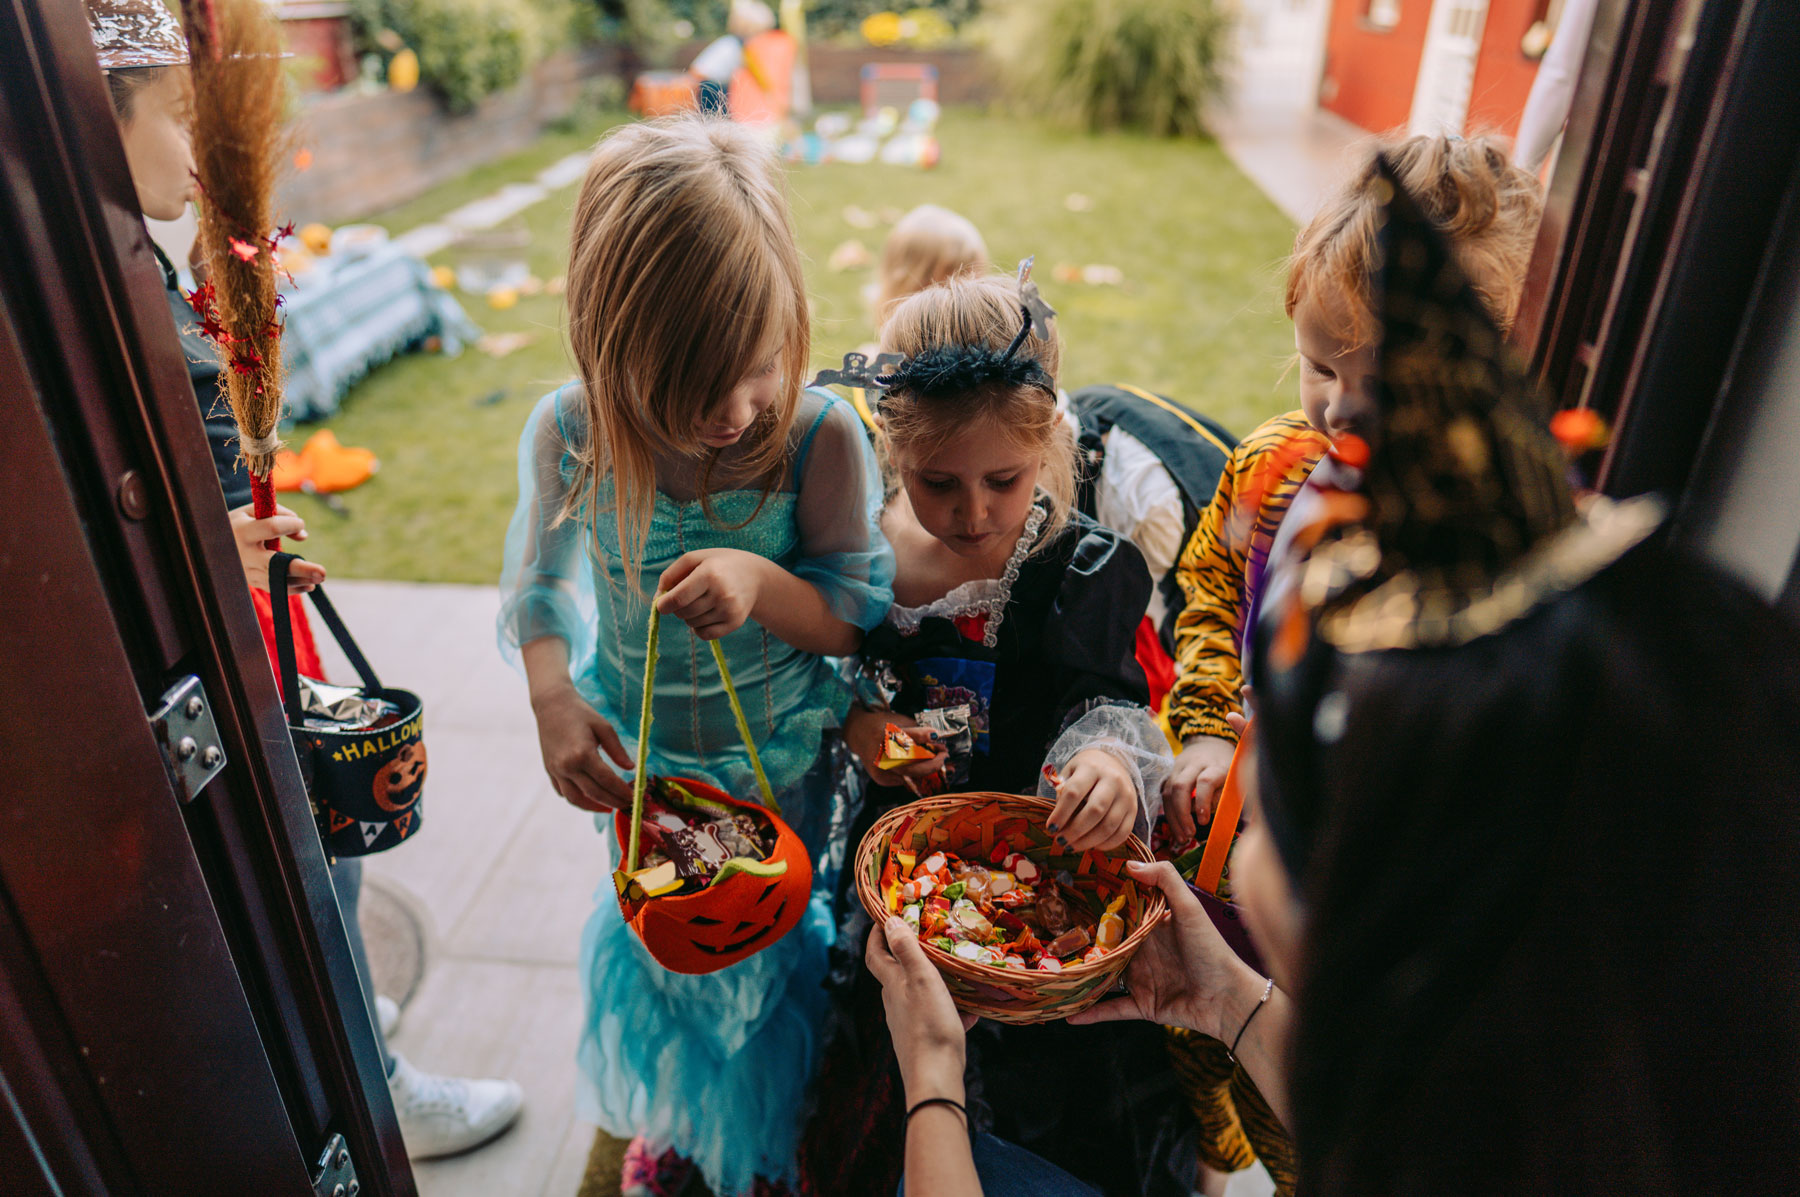 children in costumes trick-or-treating